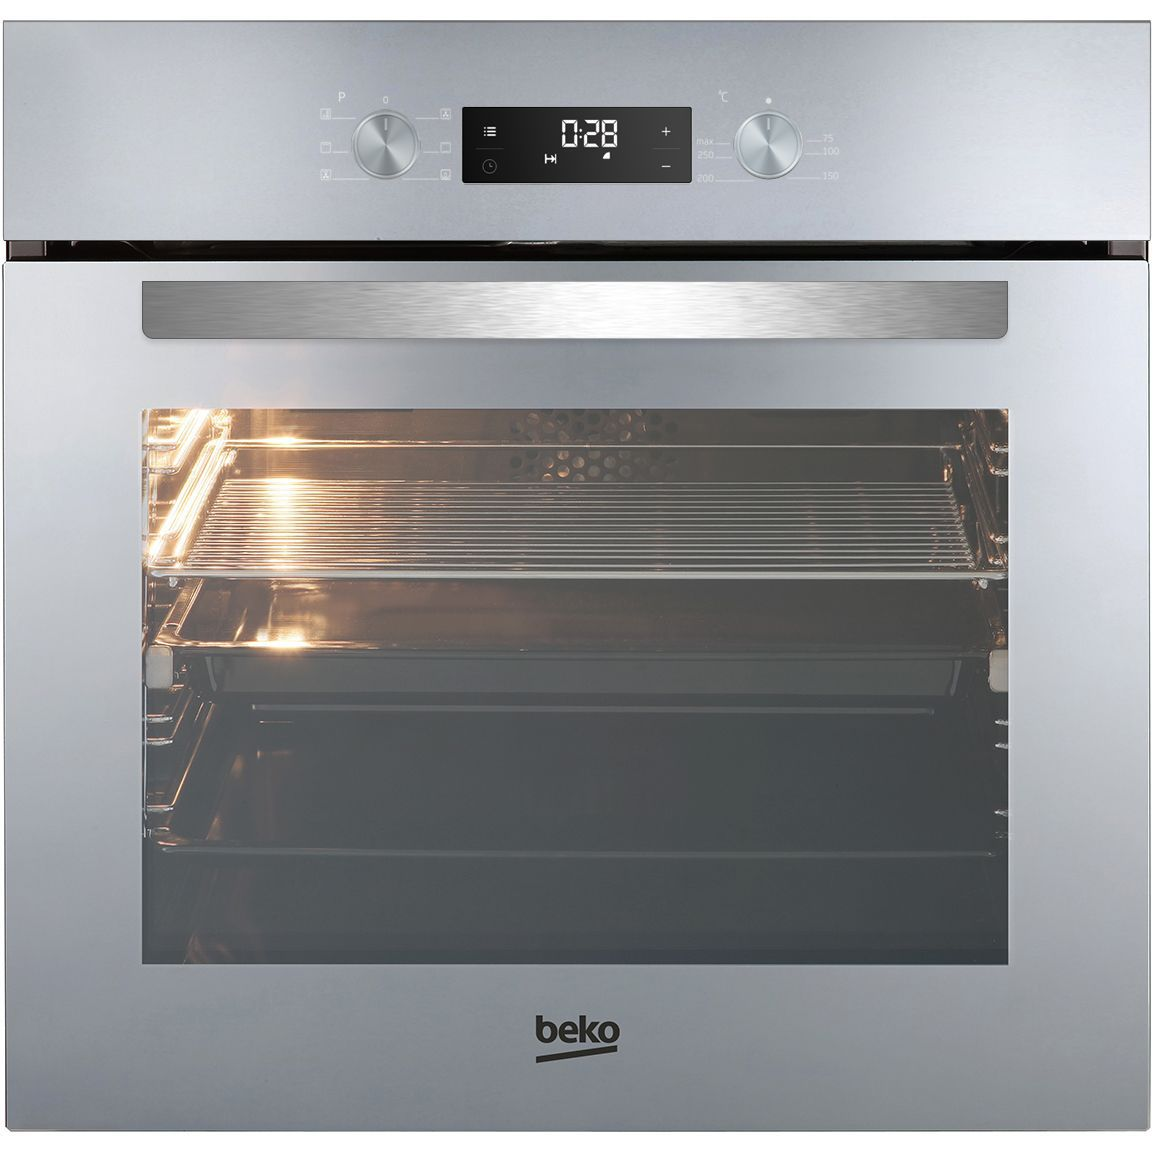 Uncategorized Beko Kitchen Appliances beko steel kitchen appliances diy bie243md stainless electric multifunction single oven